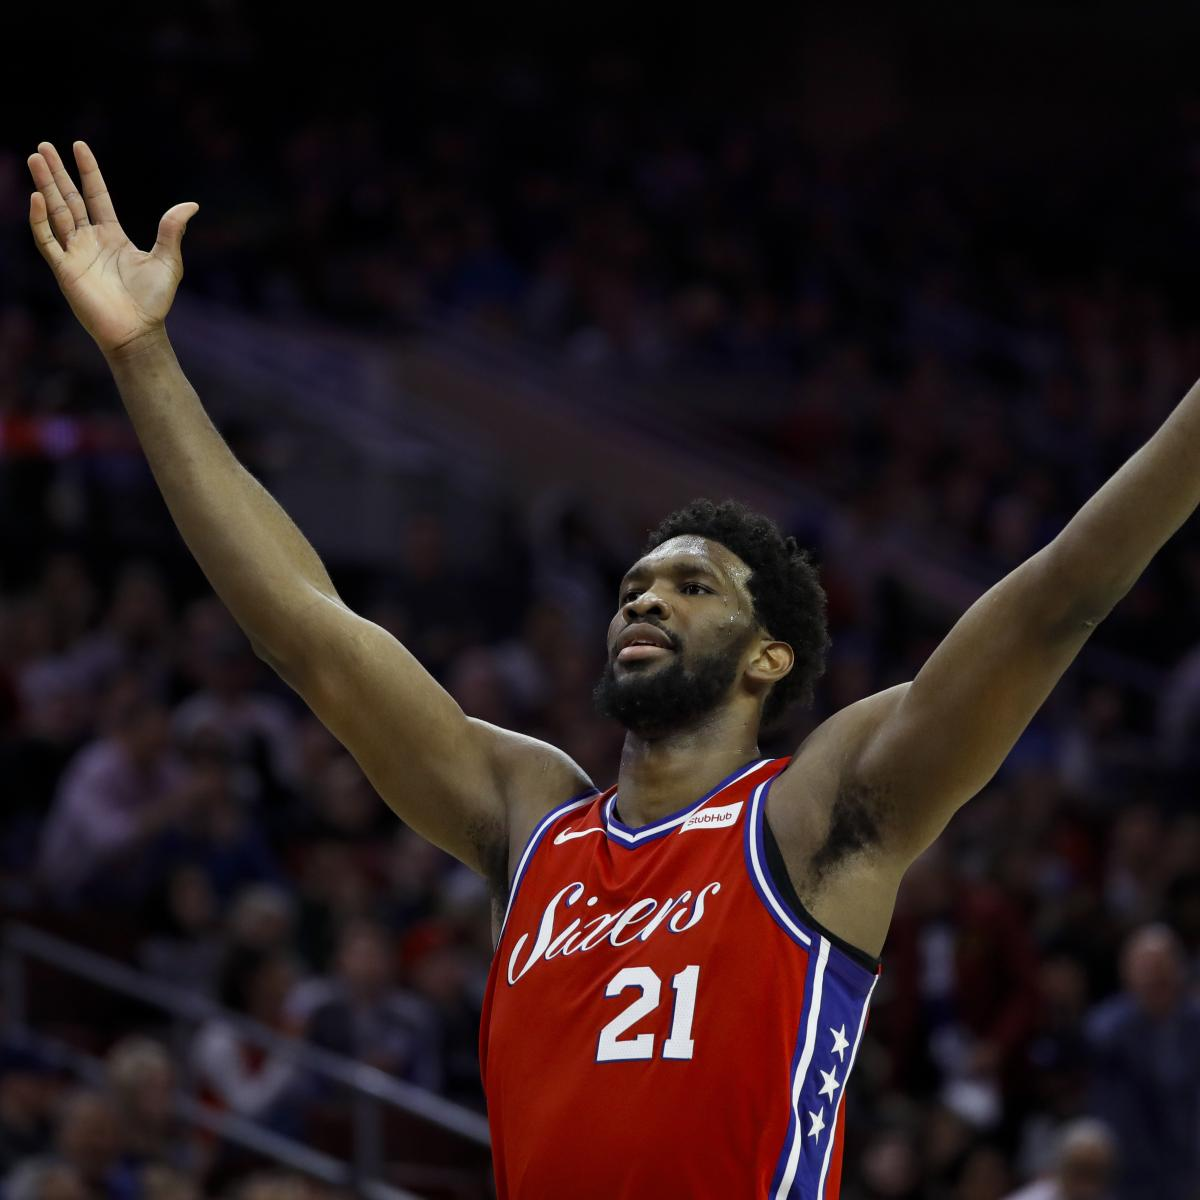 In a showdown between two of the Eastern Conference's top teams, the Philadelphia 76ers scored a huge win over the Milwaukee Bucks 130-125 at Fiserv Forum. The Sixers have been looking for a statement road win this season...